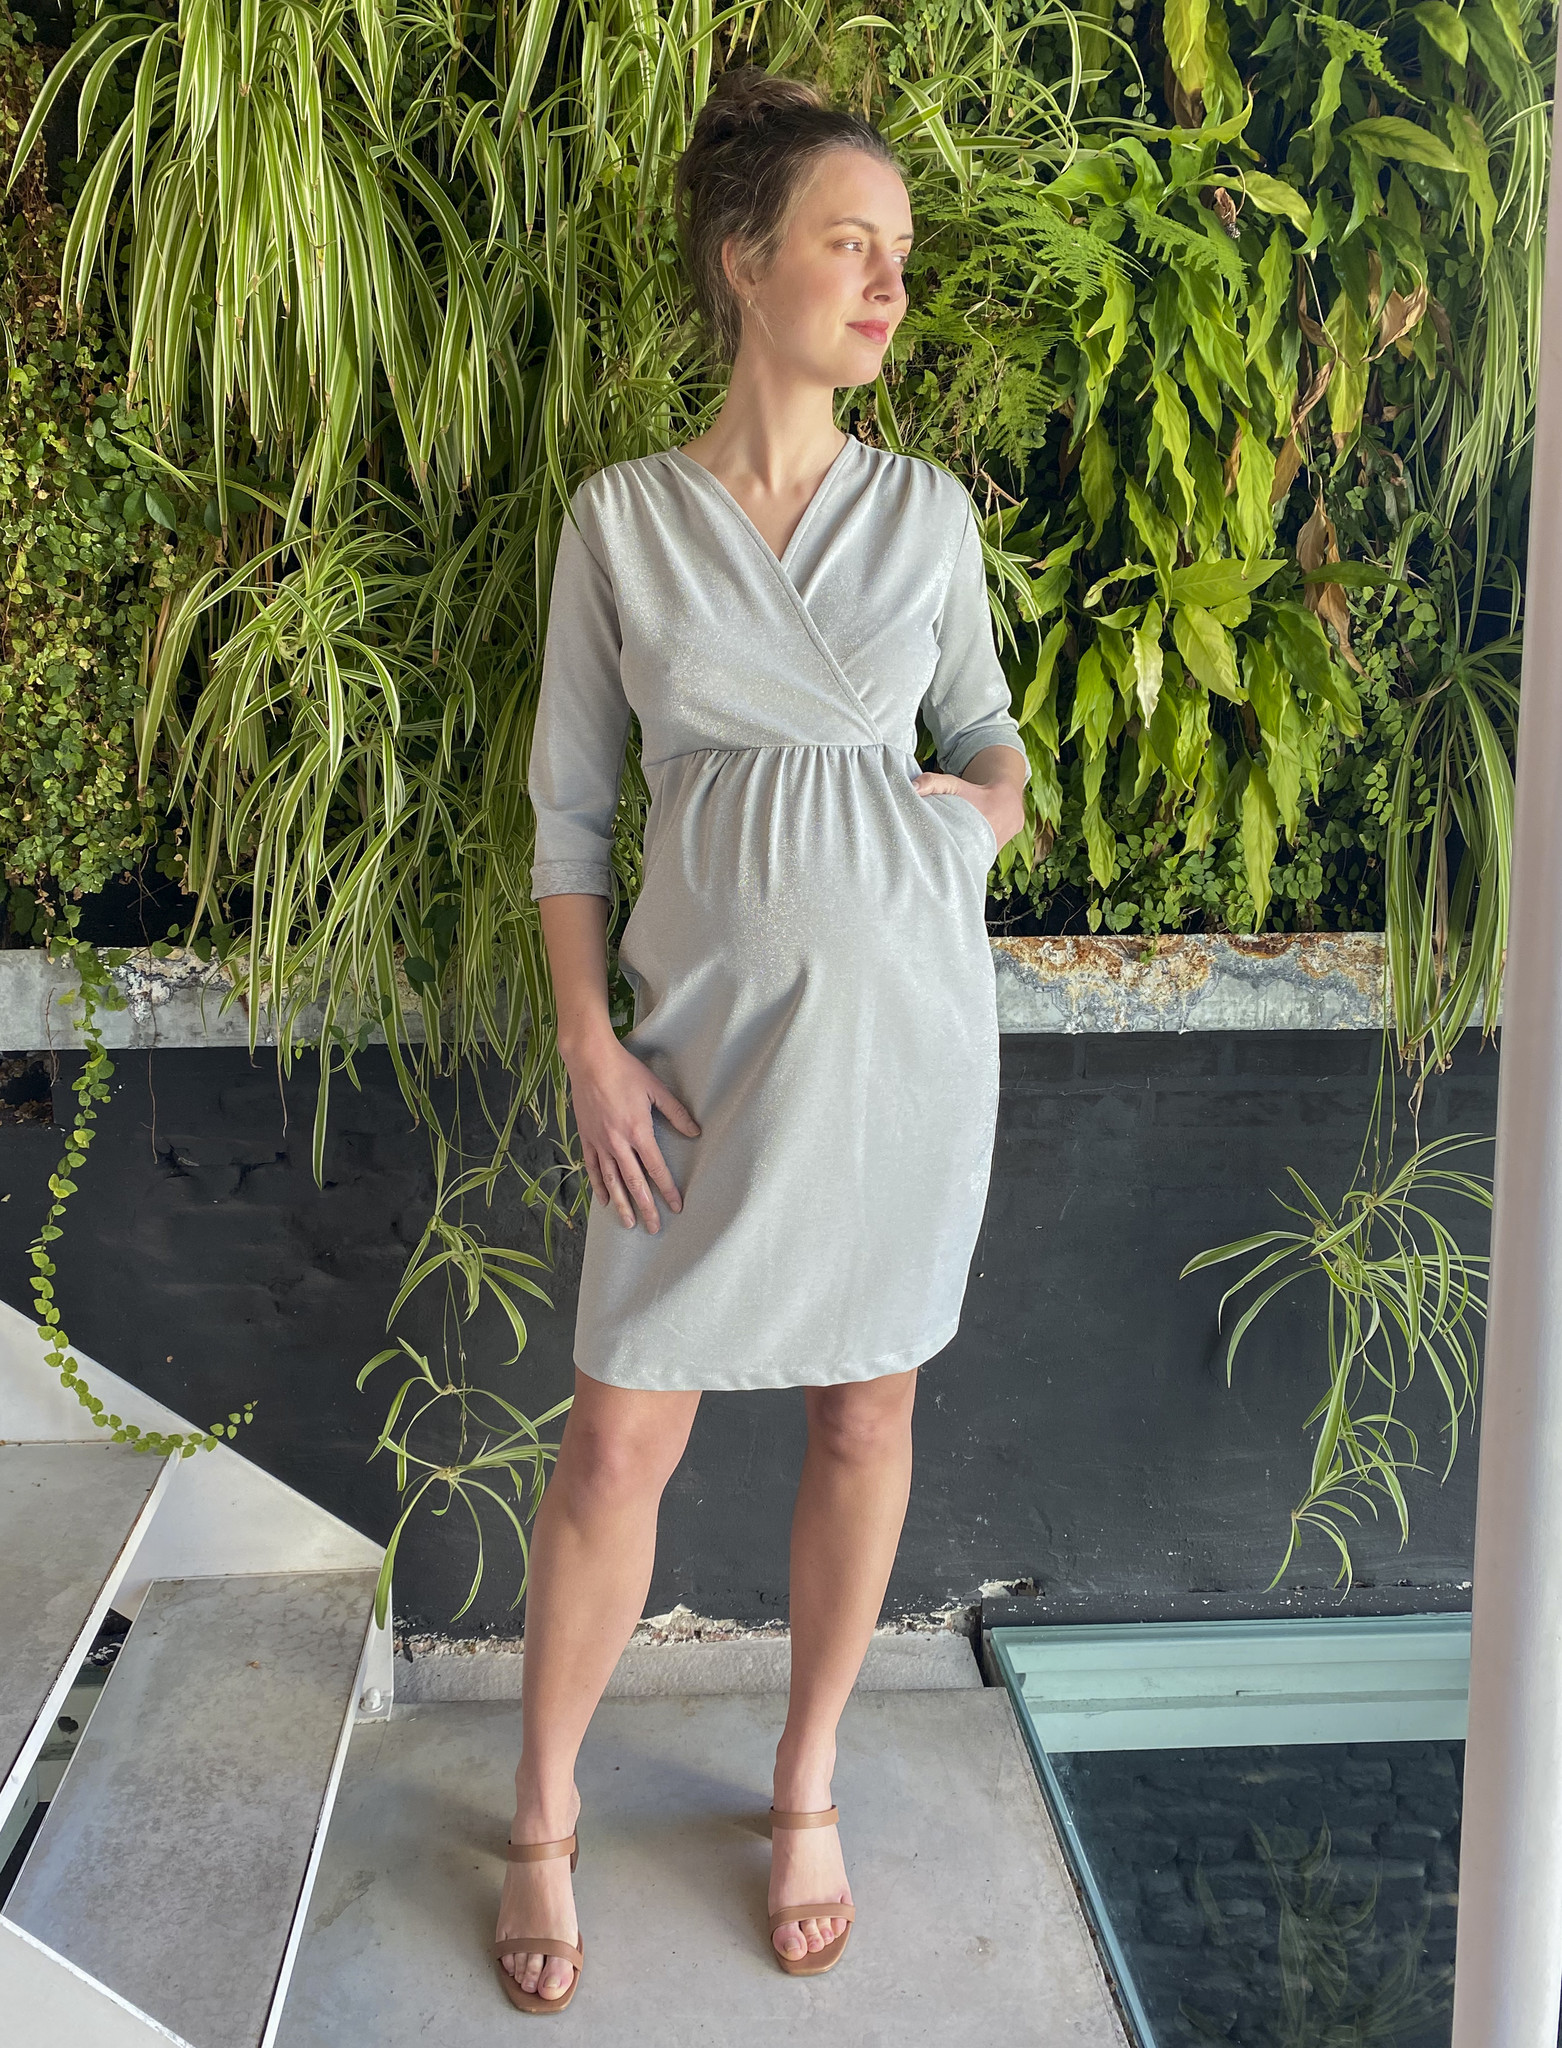 Comfy Dress 7/8 Sleeves Silver Sparkle-2